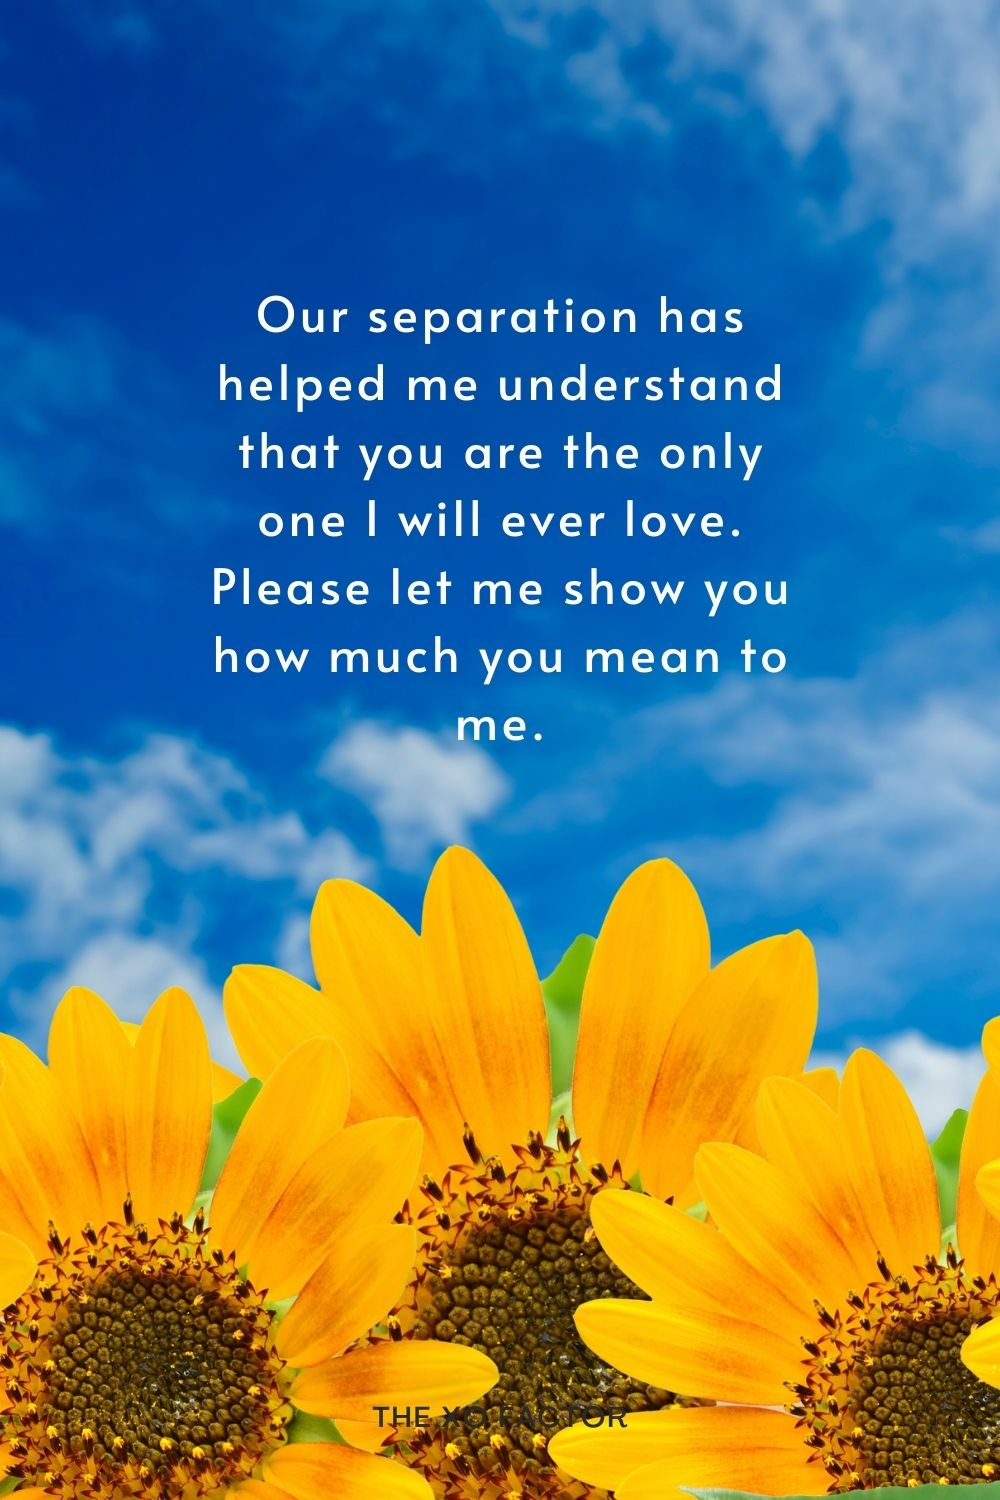 Our separation has helped me understand that you are the only one I will ever love. Please let me show you how much you mean to me.